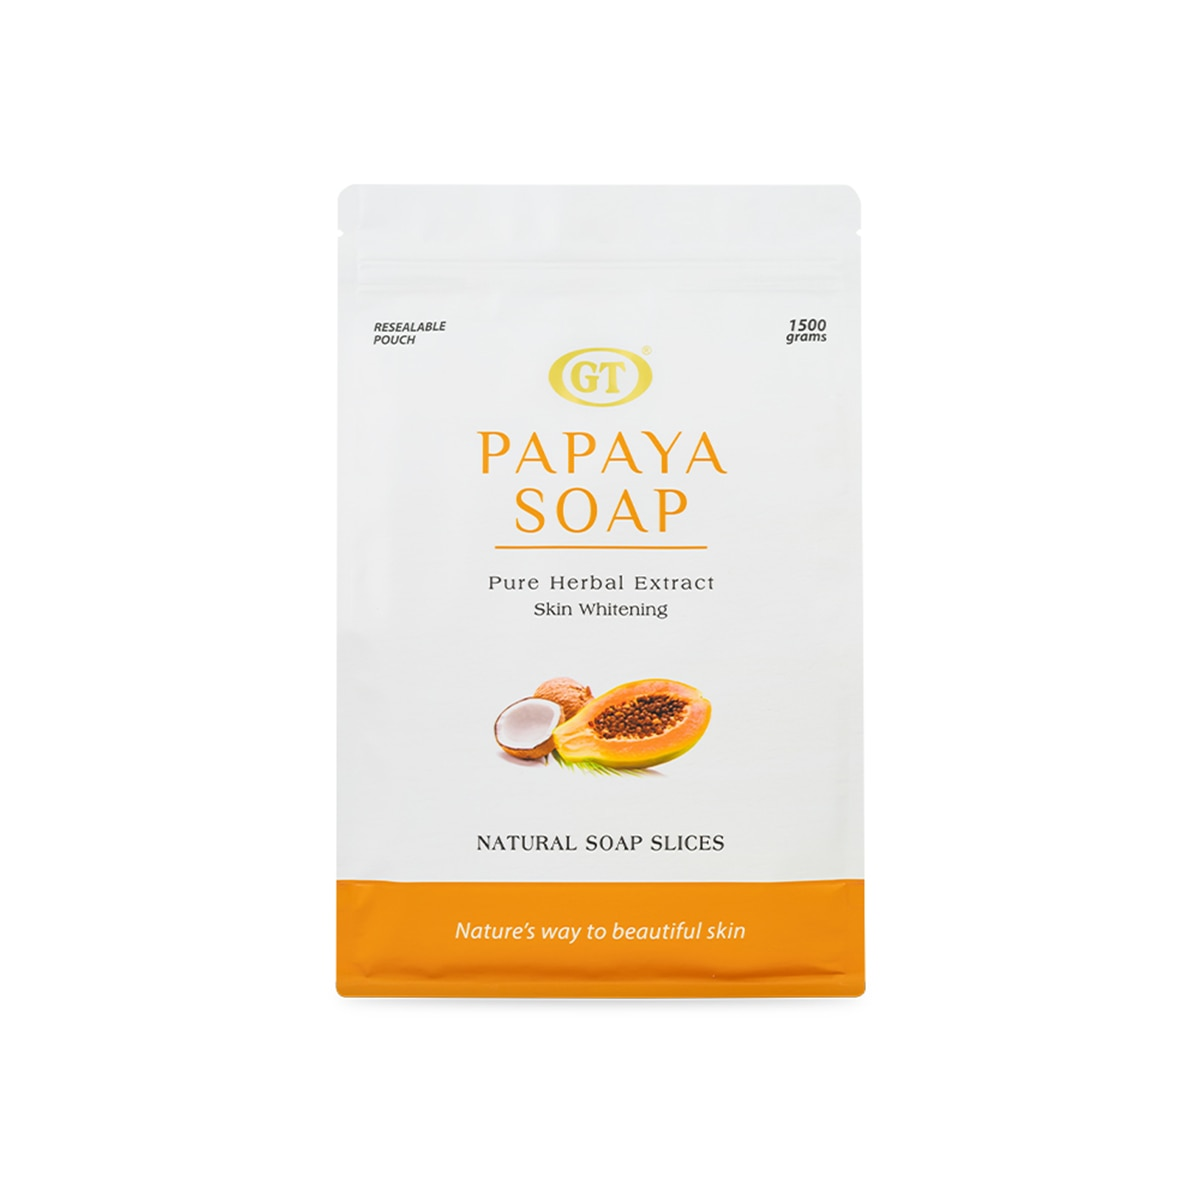 GT COSMETICSPapaya Soap Pouch 1500g,Bar SoapFREE (1) Derma C Face Mask for every purchase of P800 worth of skin care items